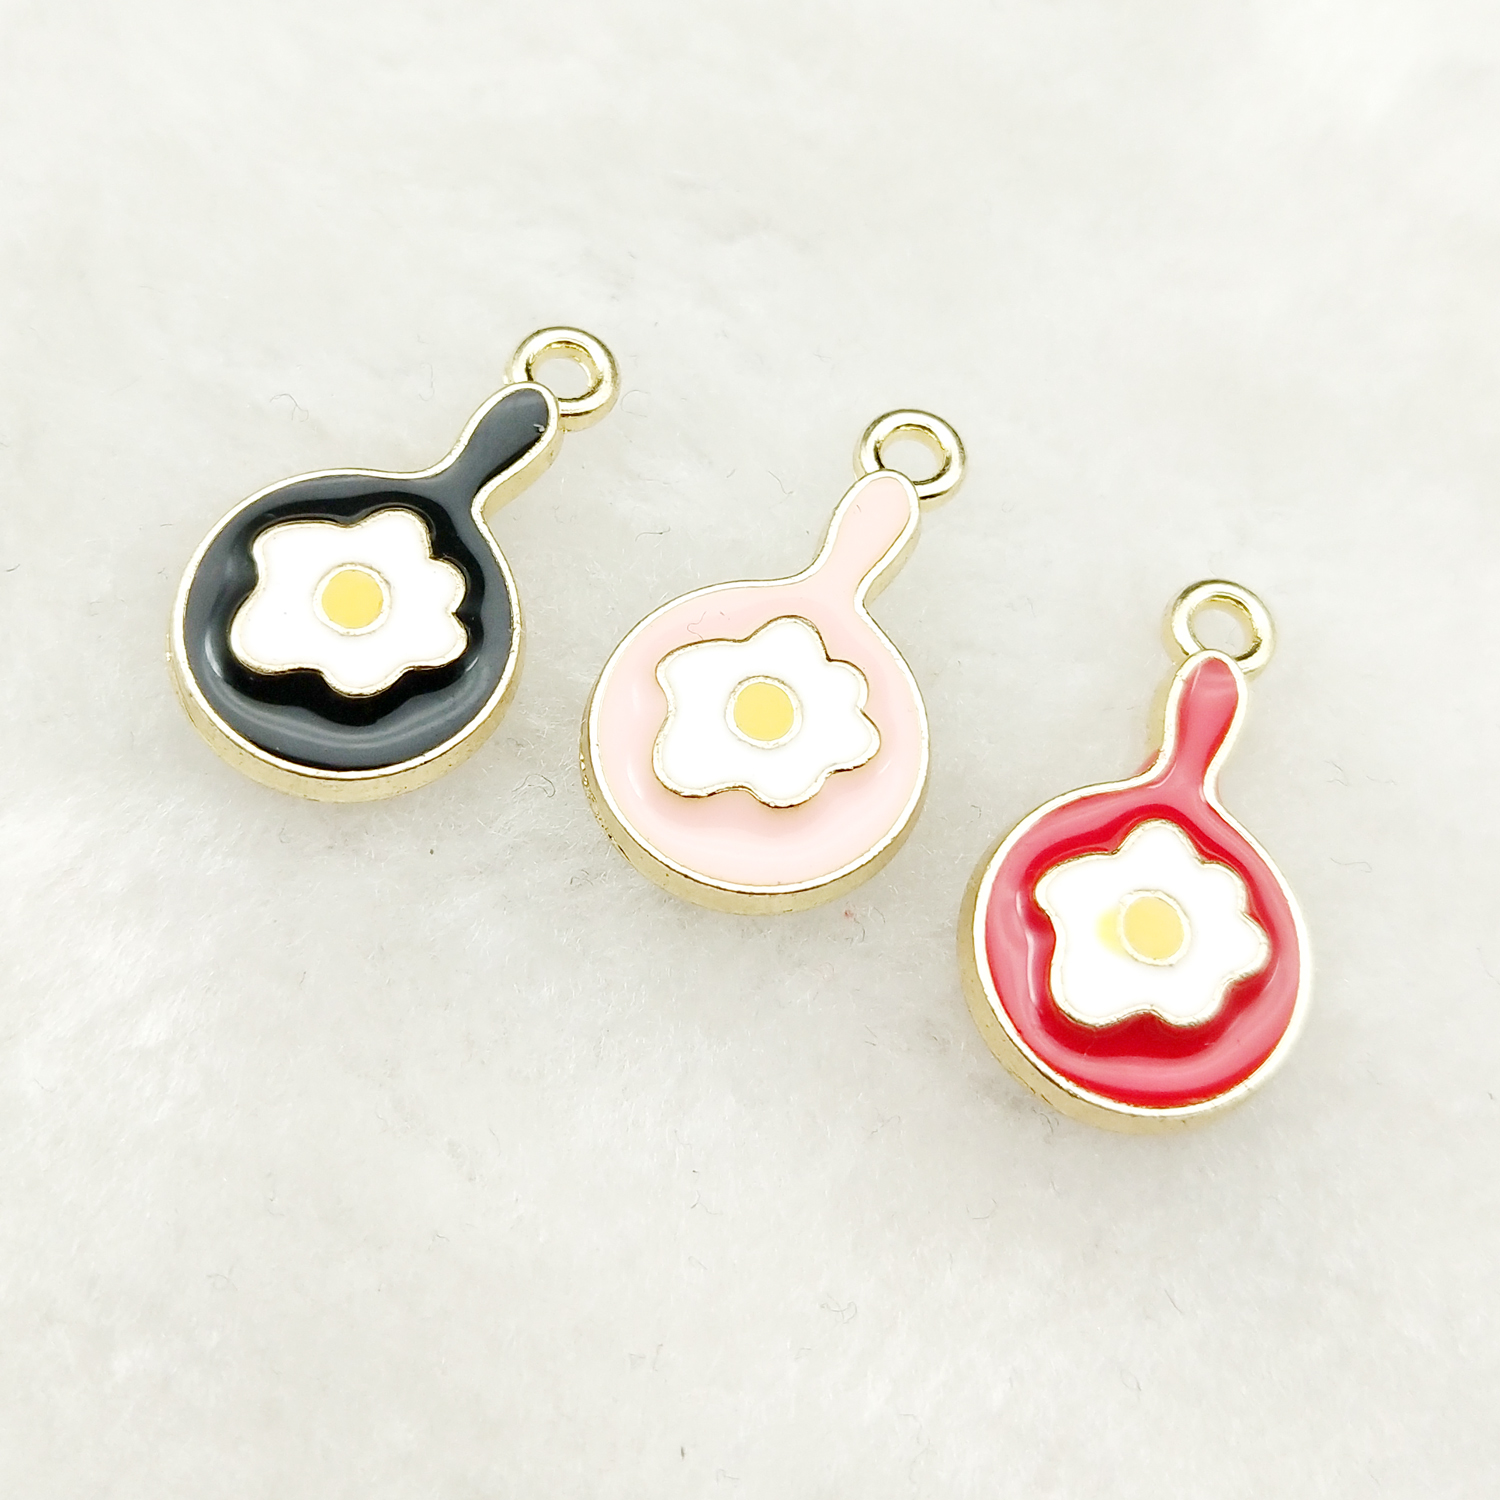 10pcs enamel egg <font><b>pan</b></font> <font><b>charm</b></font> jewelry accessories earring pendant <font><b>bracelet</b></font> necklace <font><b>charms</b></font> zinc alloy diy finding 11x20mm image